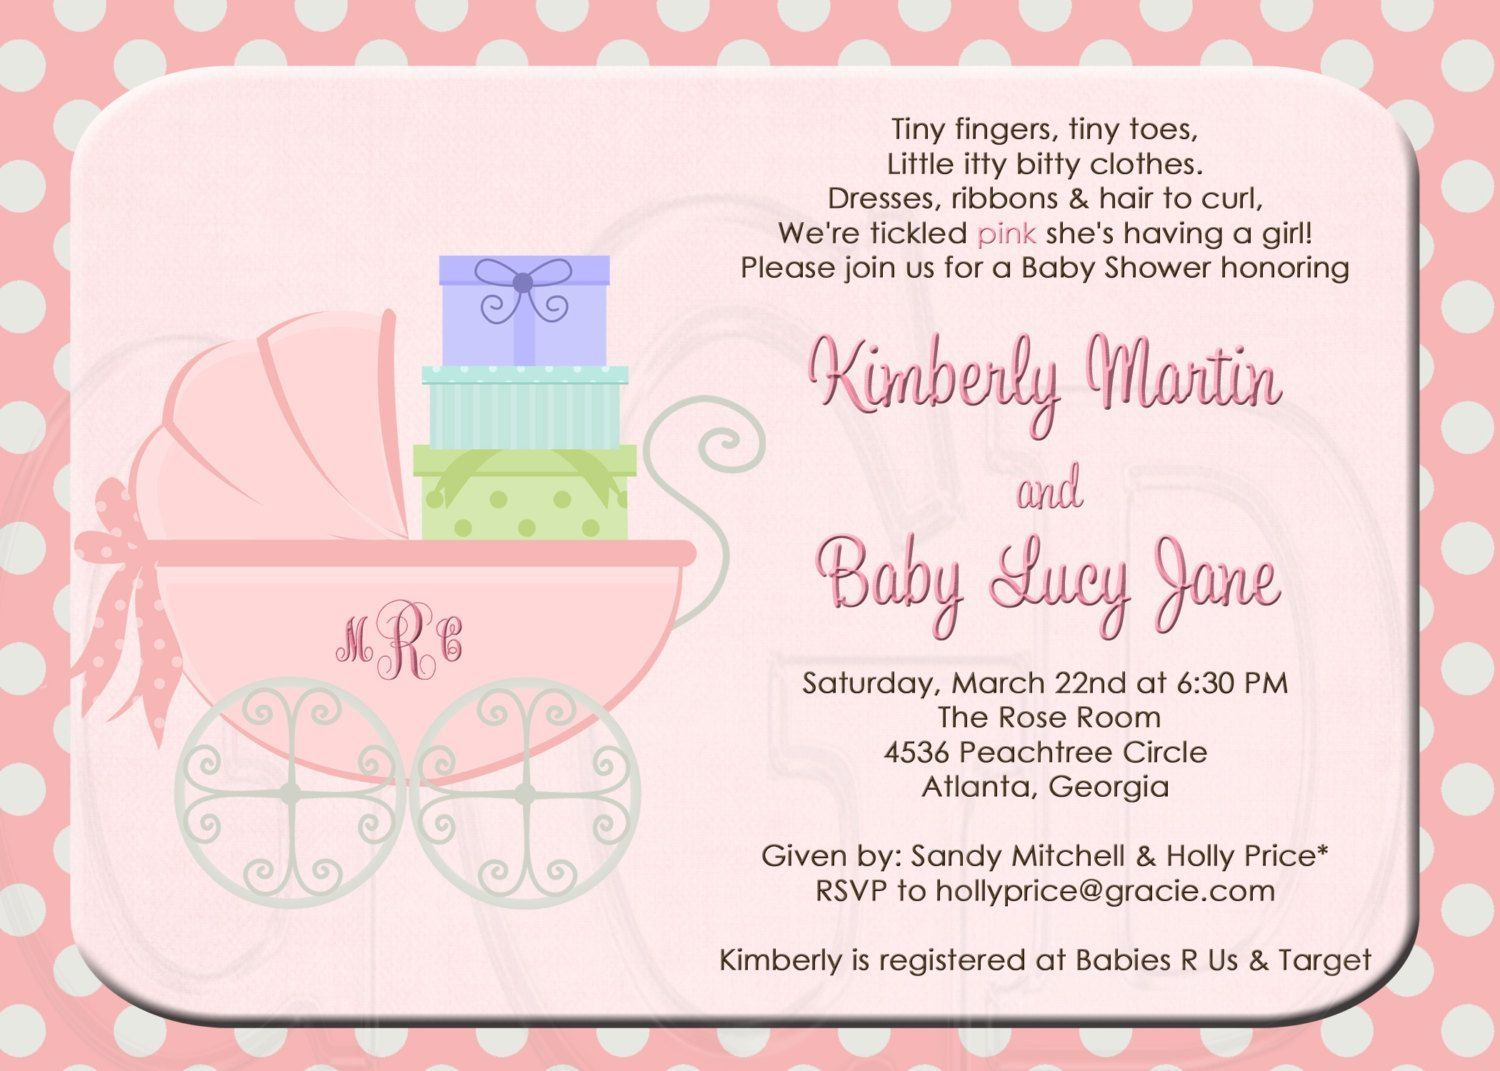 Tickled Pink Baby Shower Invitation Wording | http://atwebry.info ...